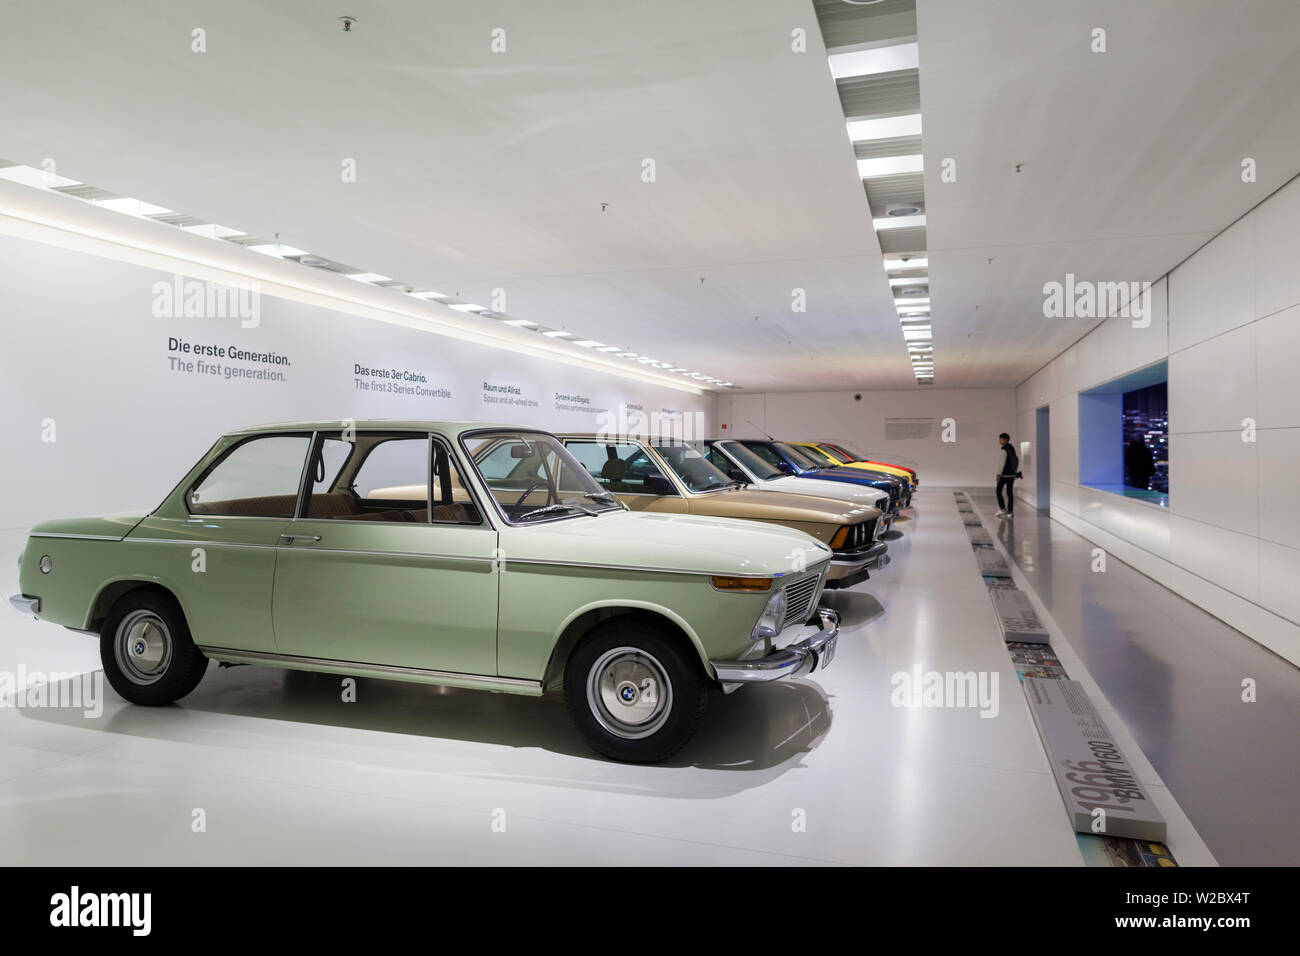 Germany, Bavaria, Munich, BMW Museum, l'exposition de voitures BMW Banque D'Images